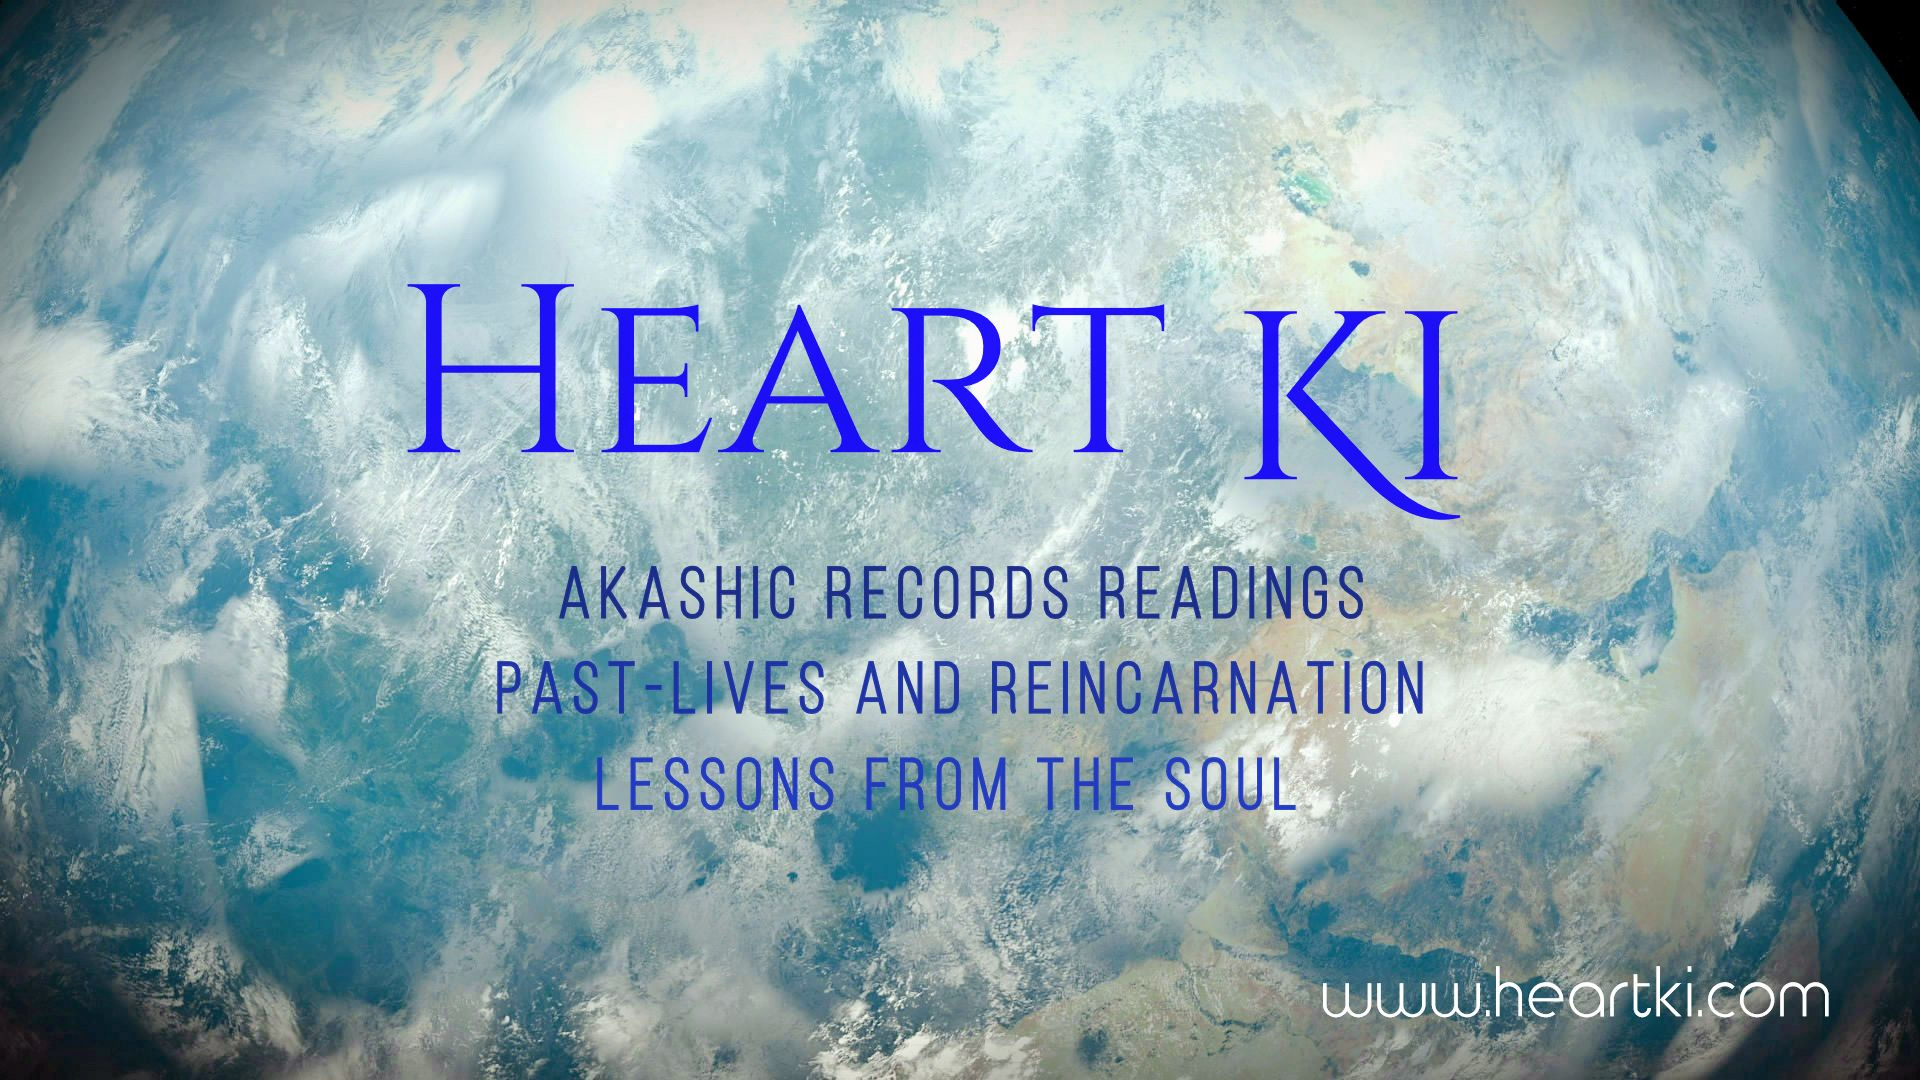 heart ki akashic records readings past lives and reincarnation lessons from the soul